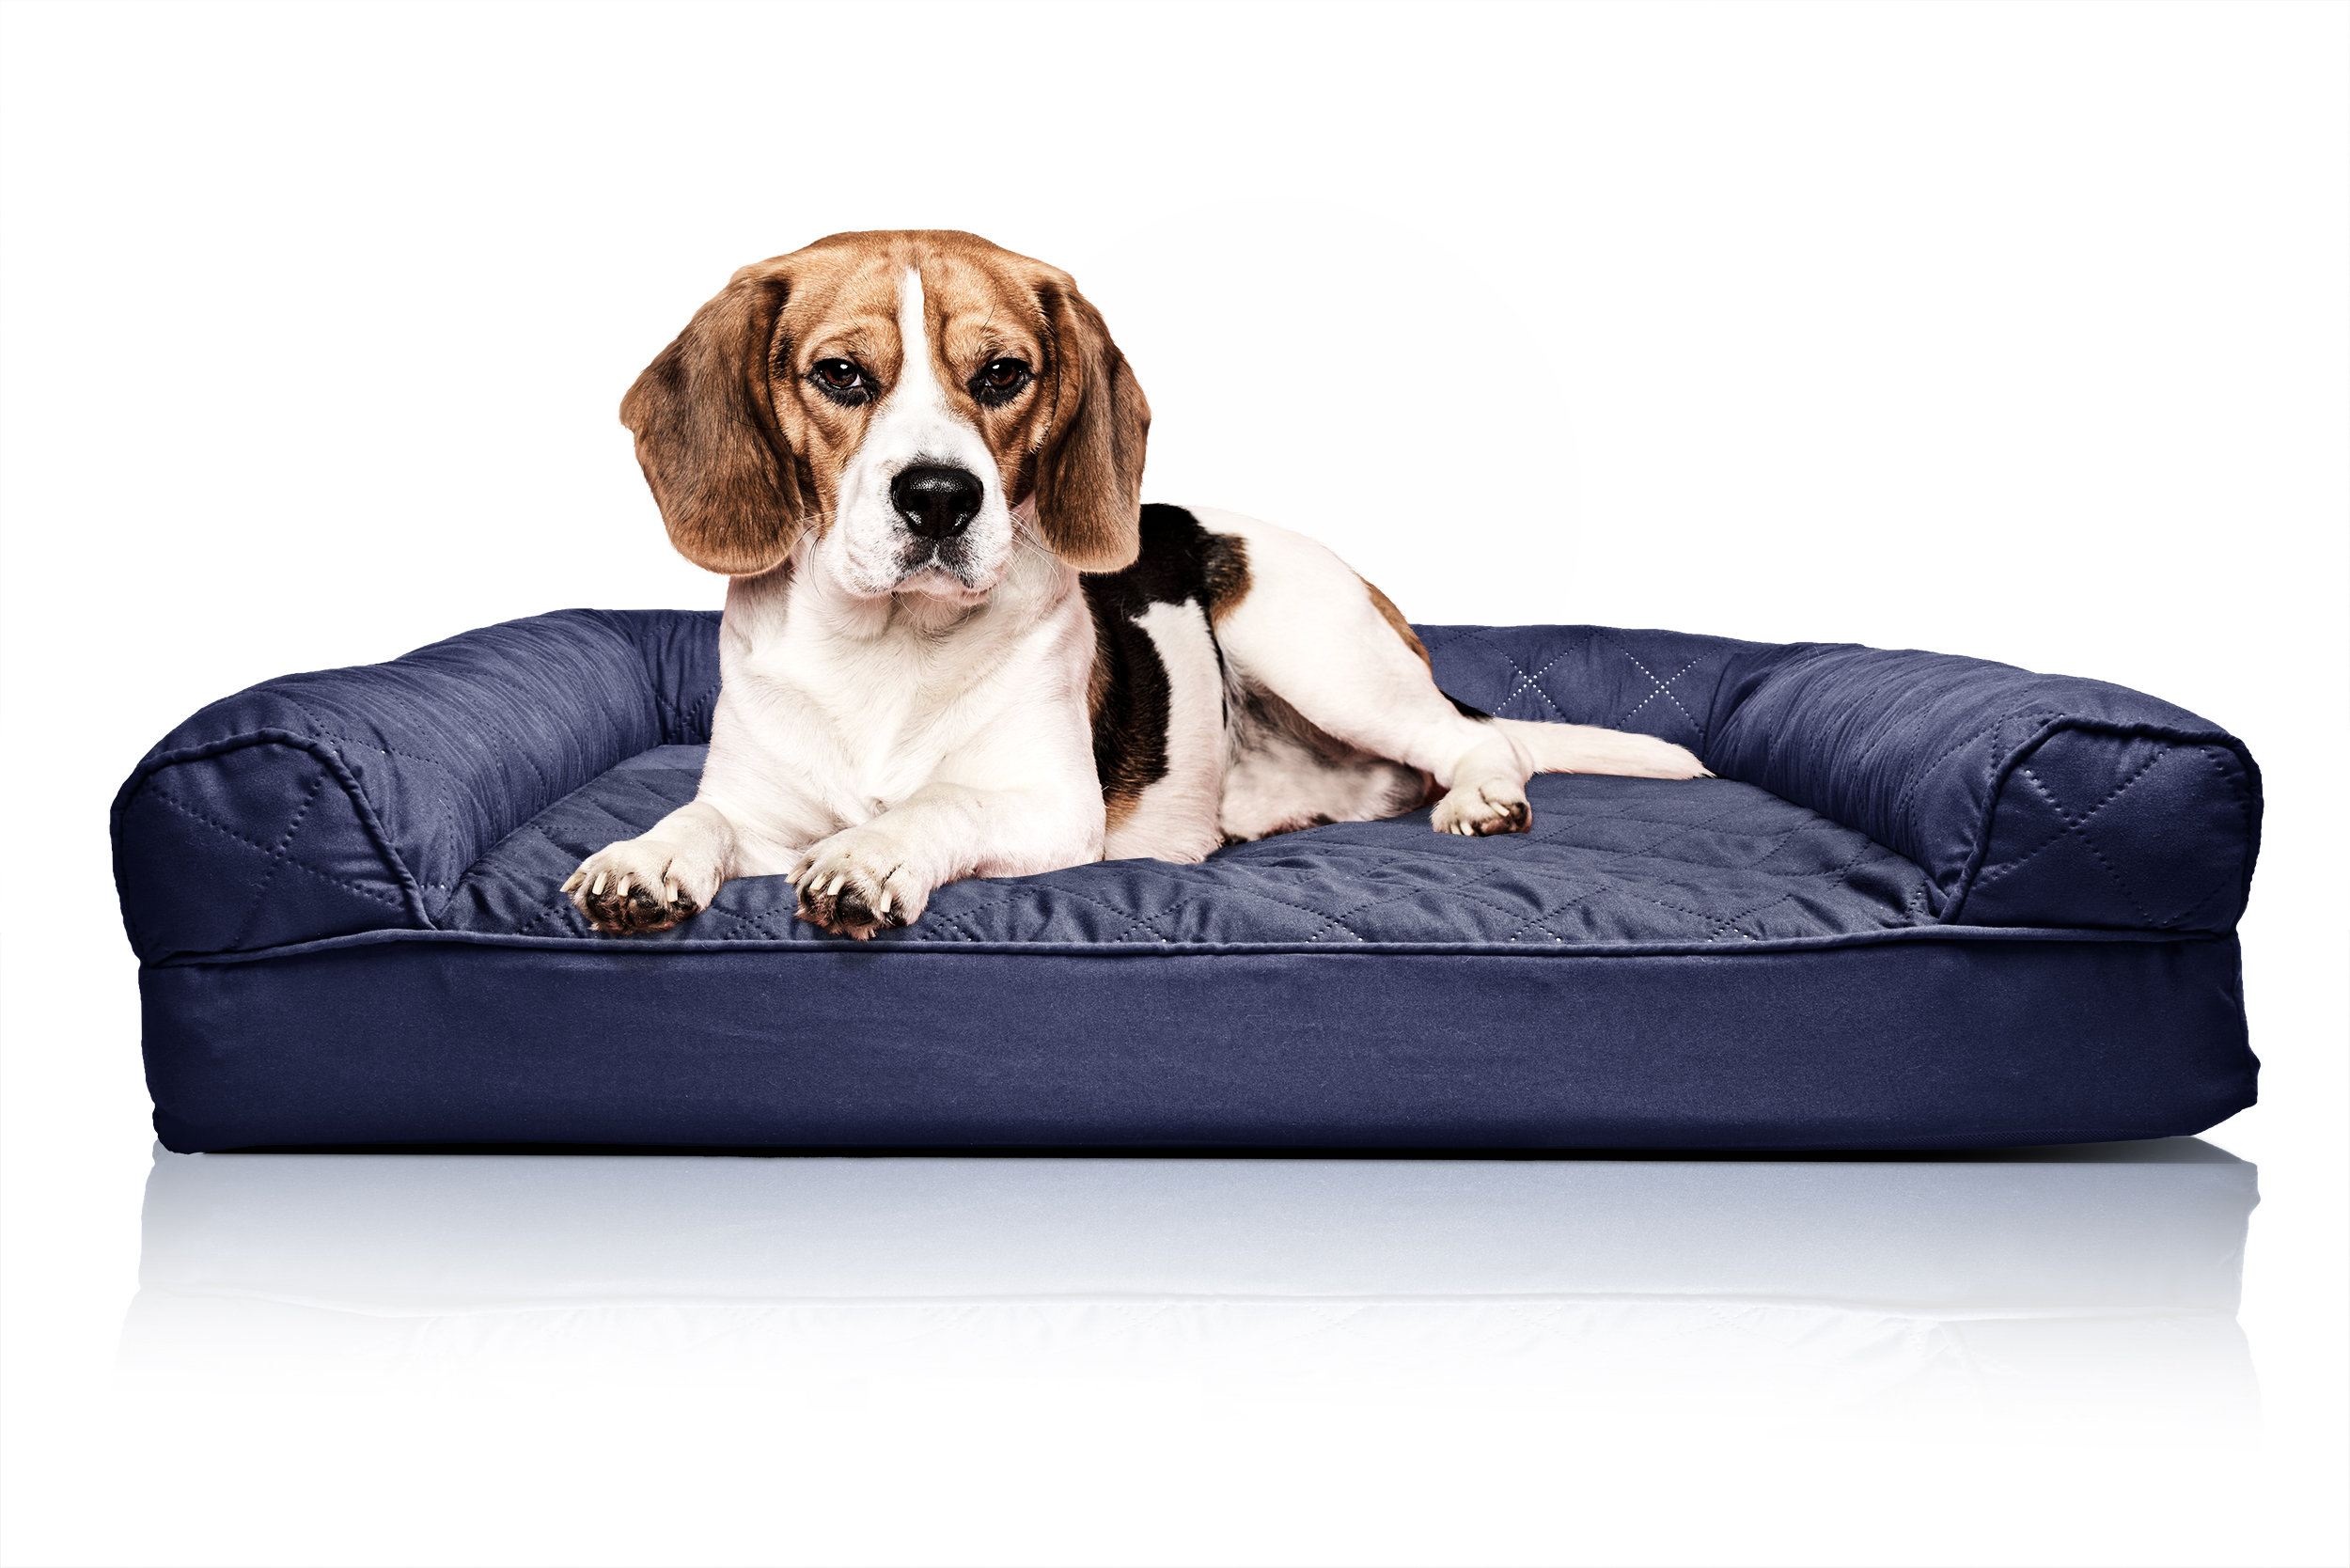 FurHaven Quilted Orthopedic Sofa Dog Bed Pet Bed; Picture 2 Of 9 ...